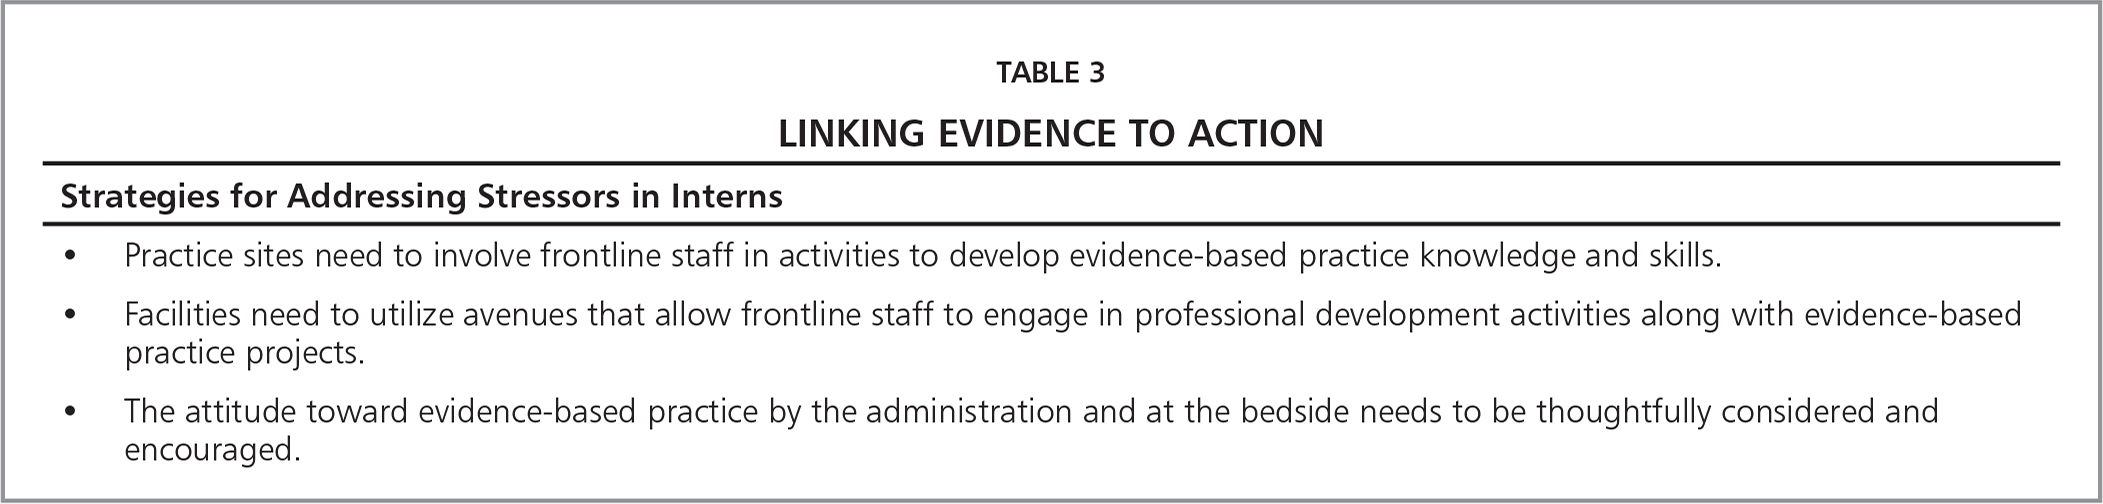 Linking Evidence to Action